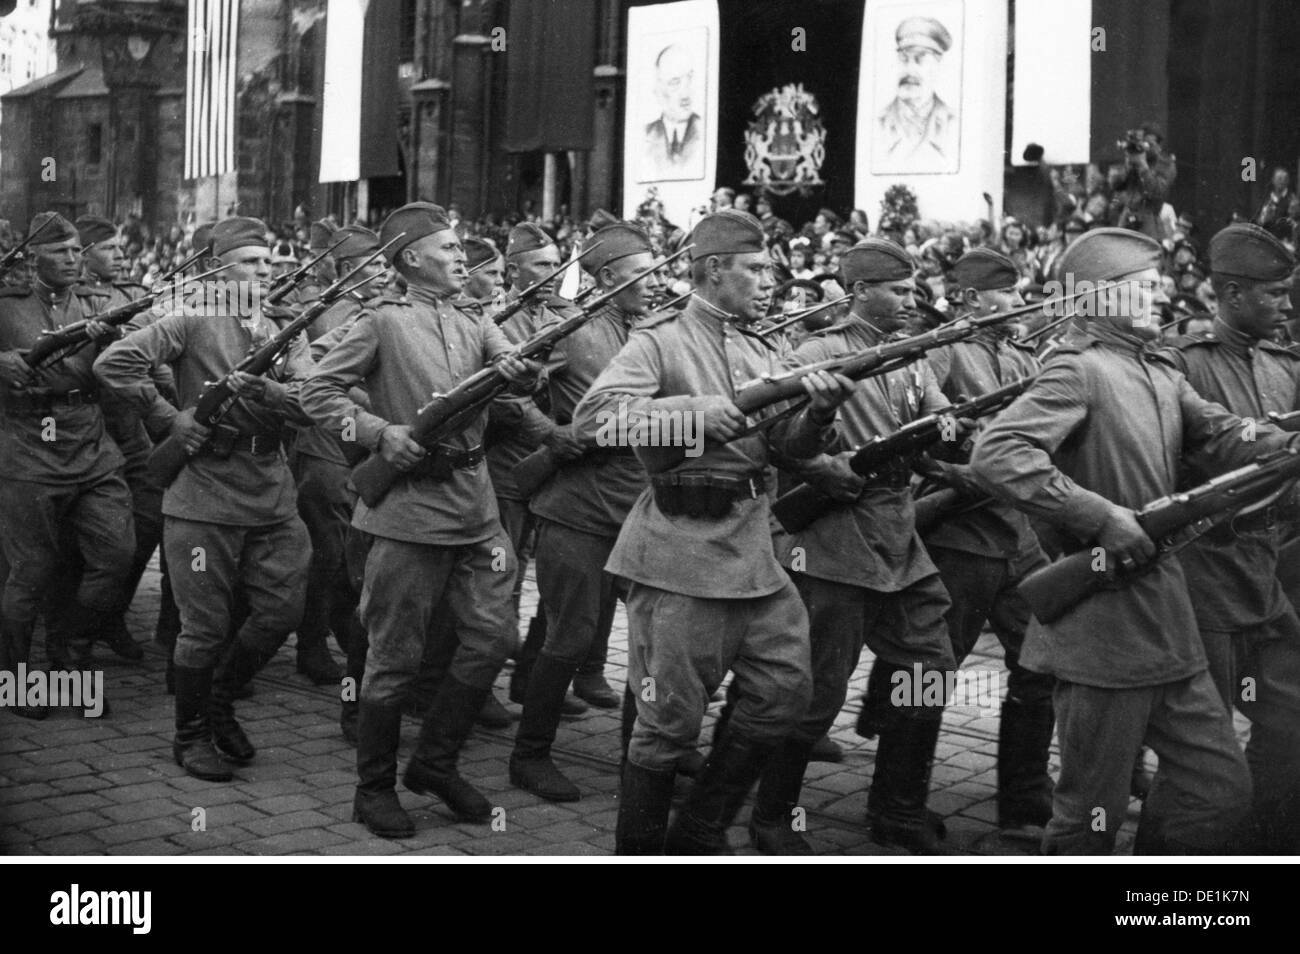 Second World War / WWII, Czechoslovakia, Prague Uprising, May 1945, victory parade, soldiers of the soviet army marching past the VIP stand, Wenceslas Square, 17.5.1945, 20th century, 1940s, 40s, Czechia, Czech Republic, resistance, Red Army, military, soldiers, soldier, USSR, Union of Socialist Soviet Republics, Soviet Union, half length, march, marching, uniform, uniforms, weapon, weapons, arms, rifle, gun, rifles, guns, bayonet, bayonets, military parade, square, squares, victory, victories, liberation, liberations, liberator, liberators, military review, wo, Additional-Rights-Clearences-NA - Stock Image